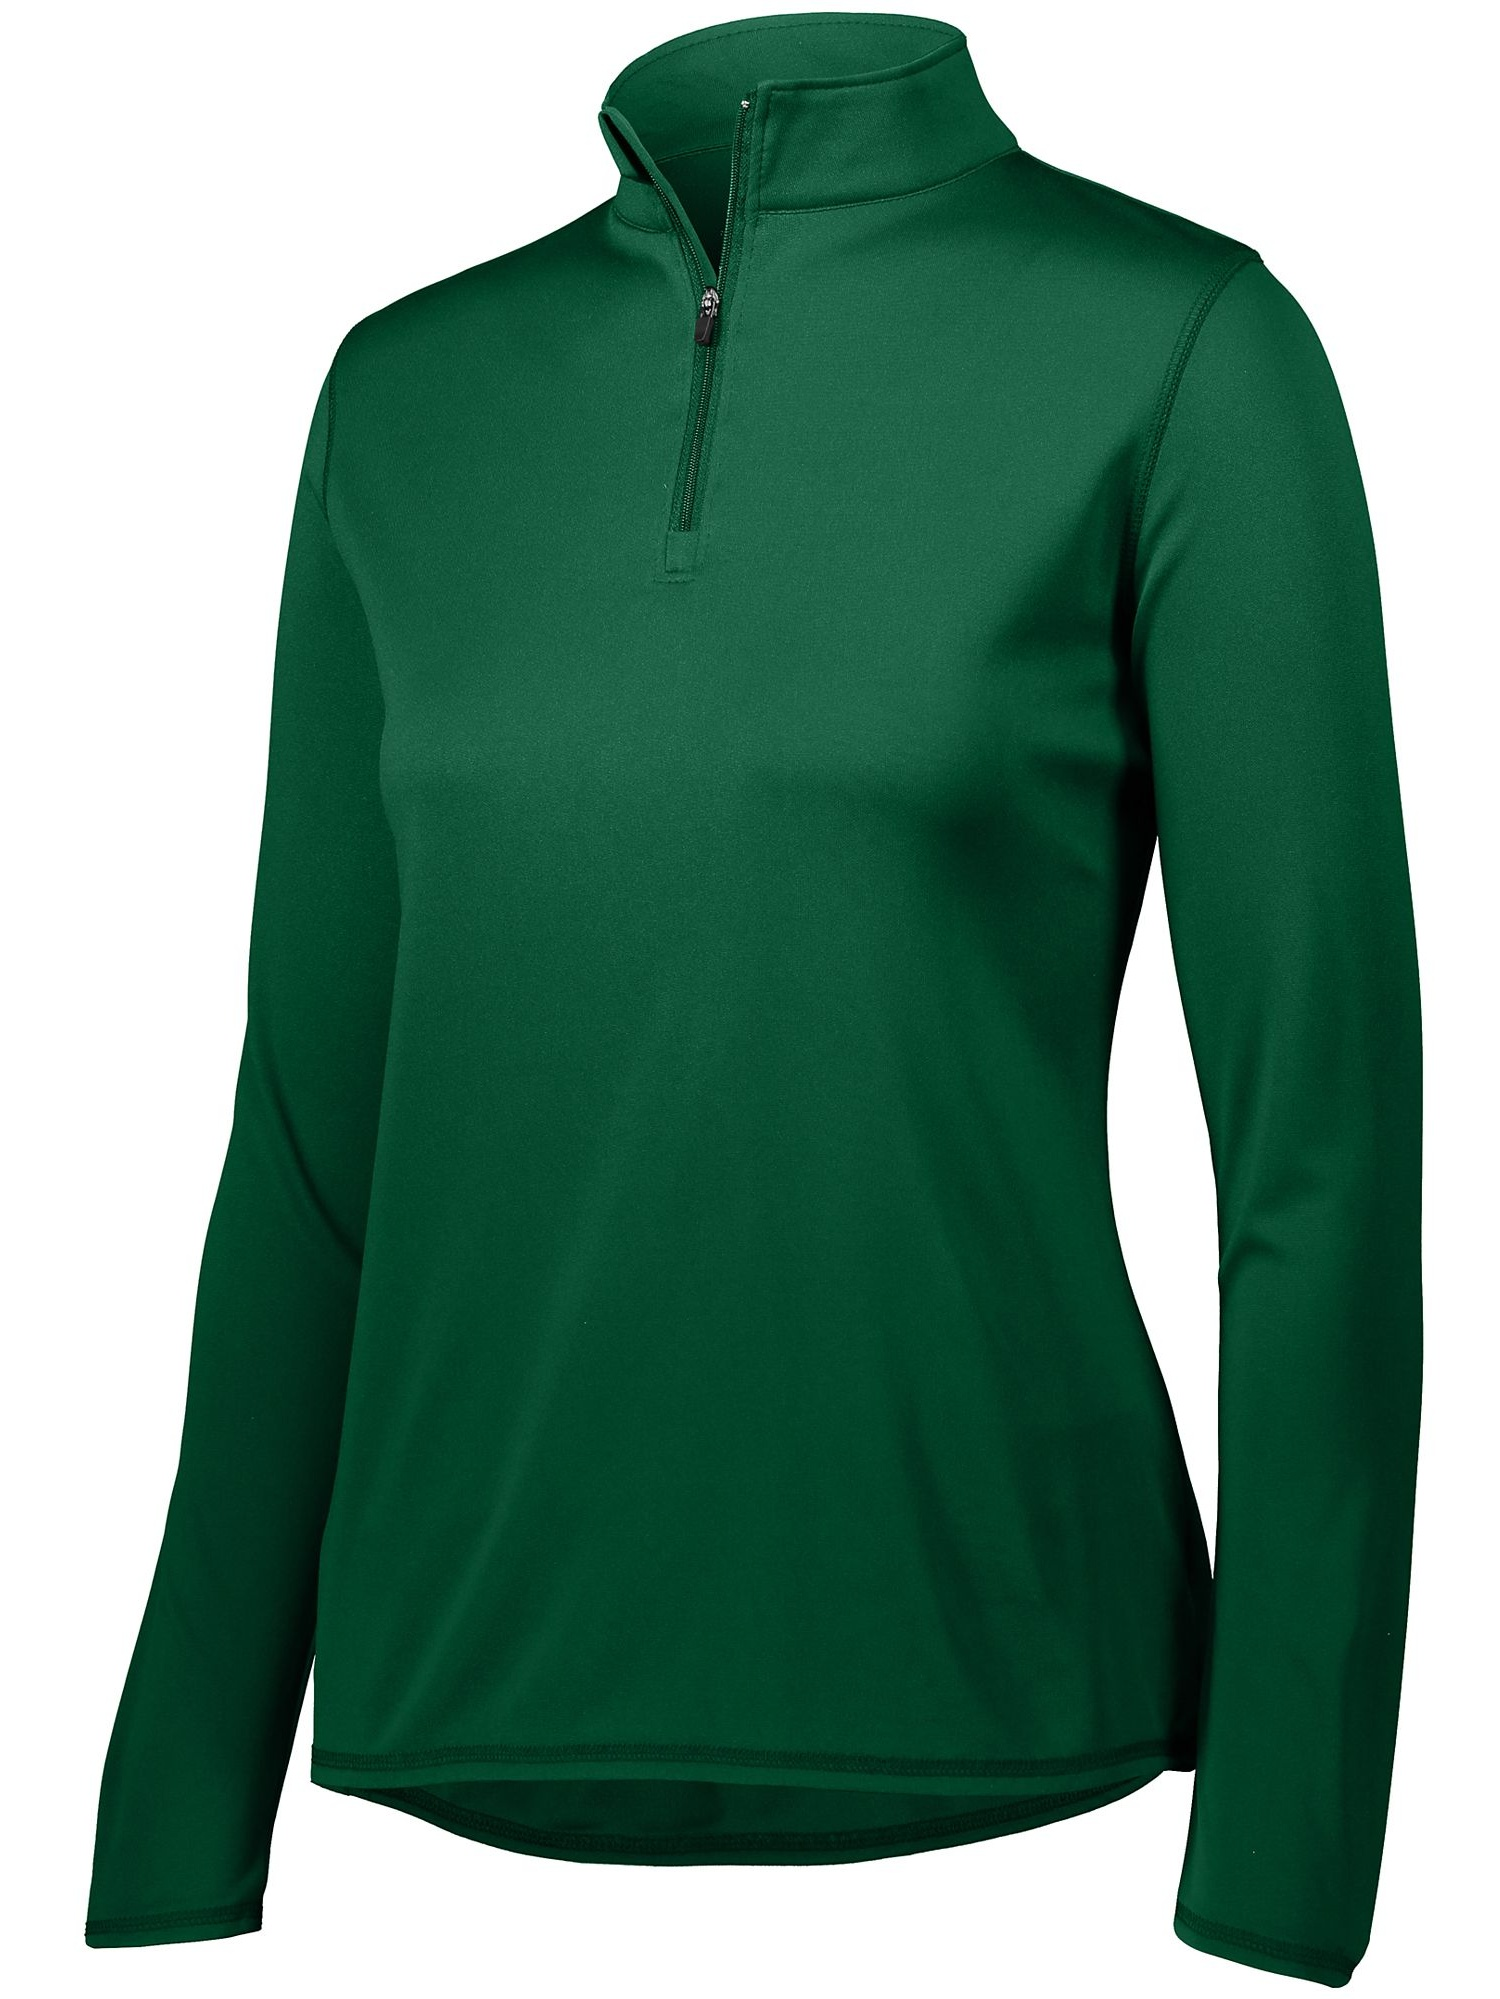 Augusta Sportswear Women's Attain 1/4 Zip Pullover 2787